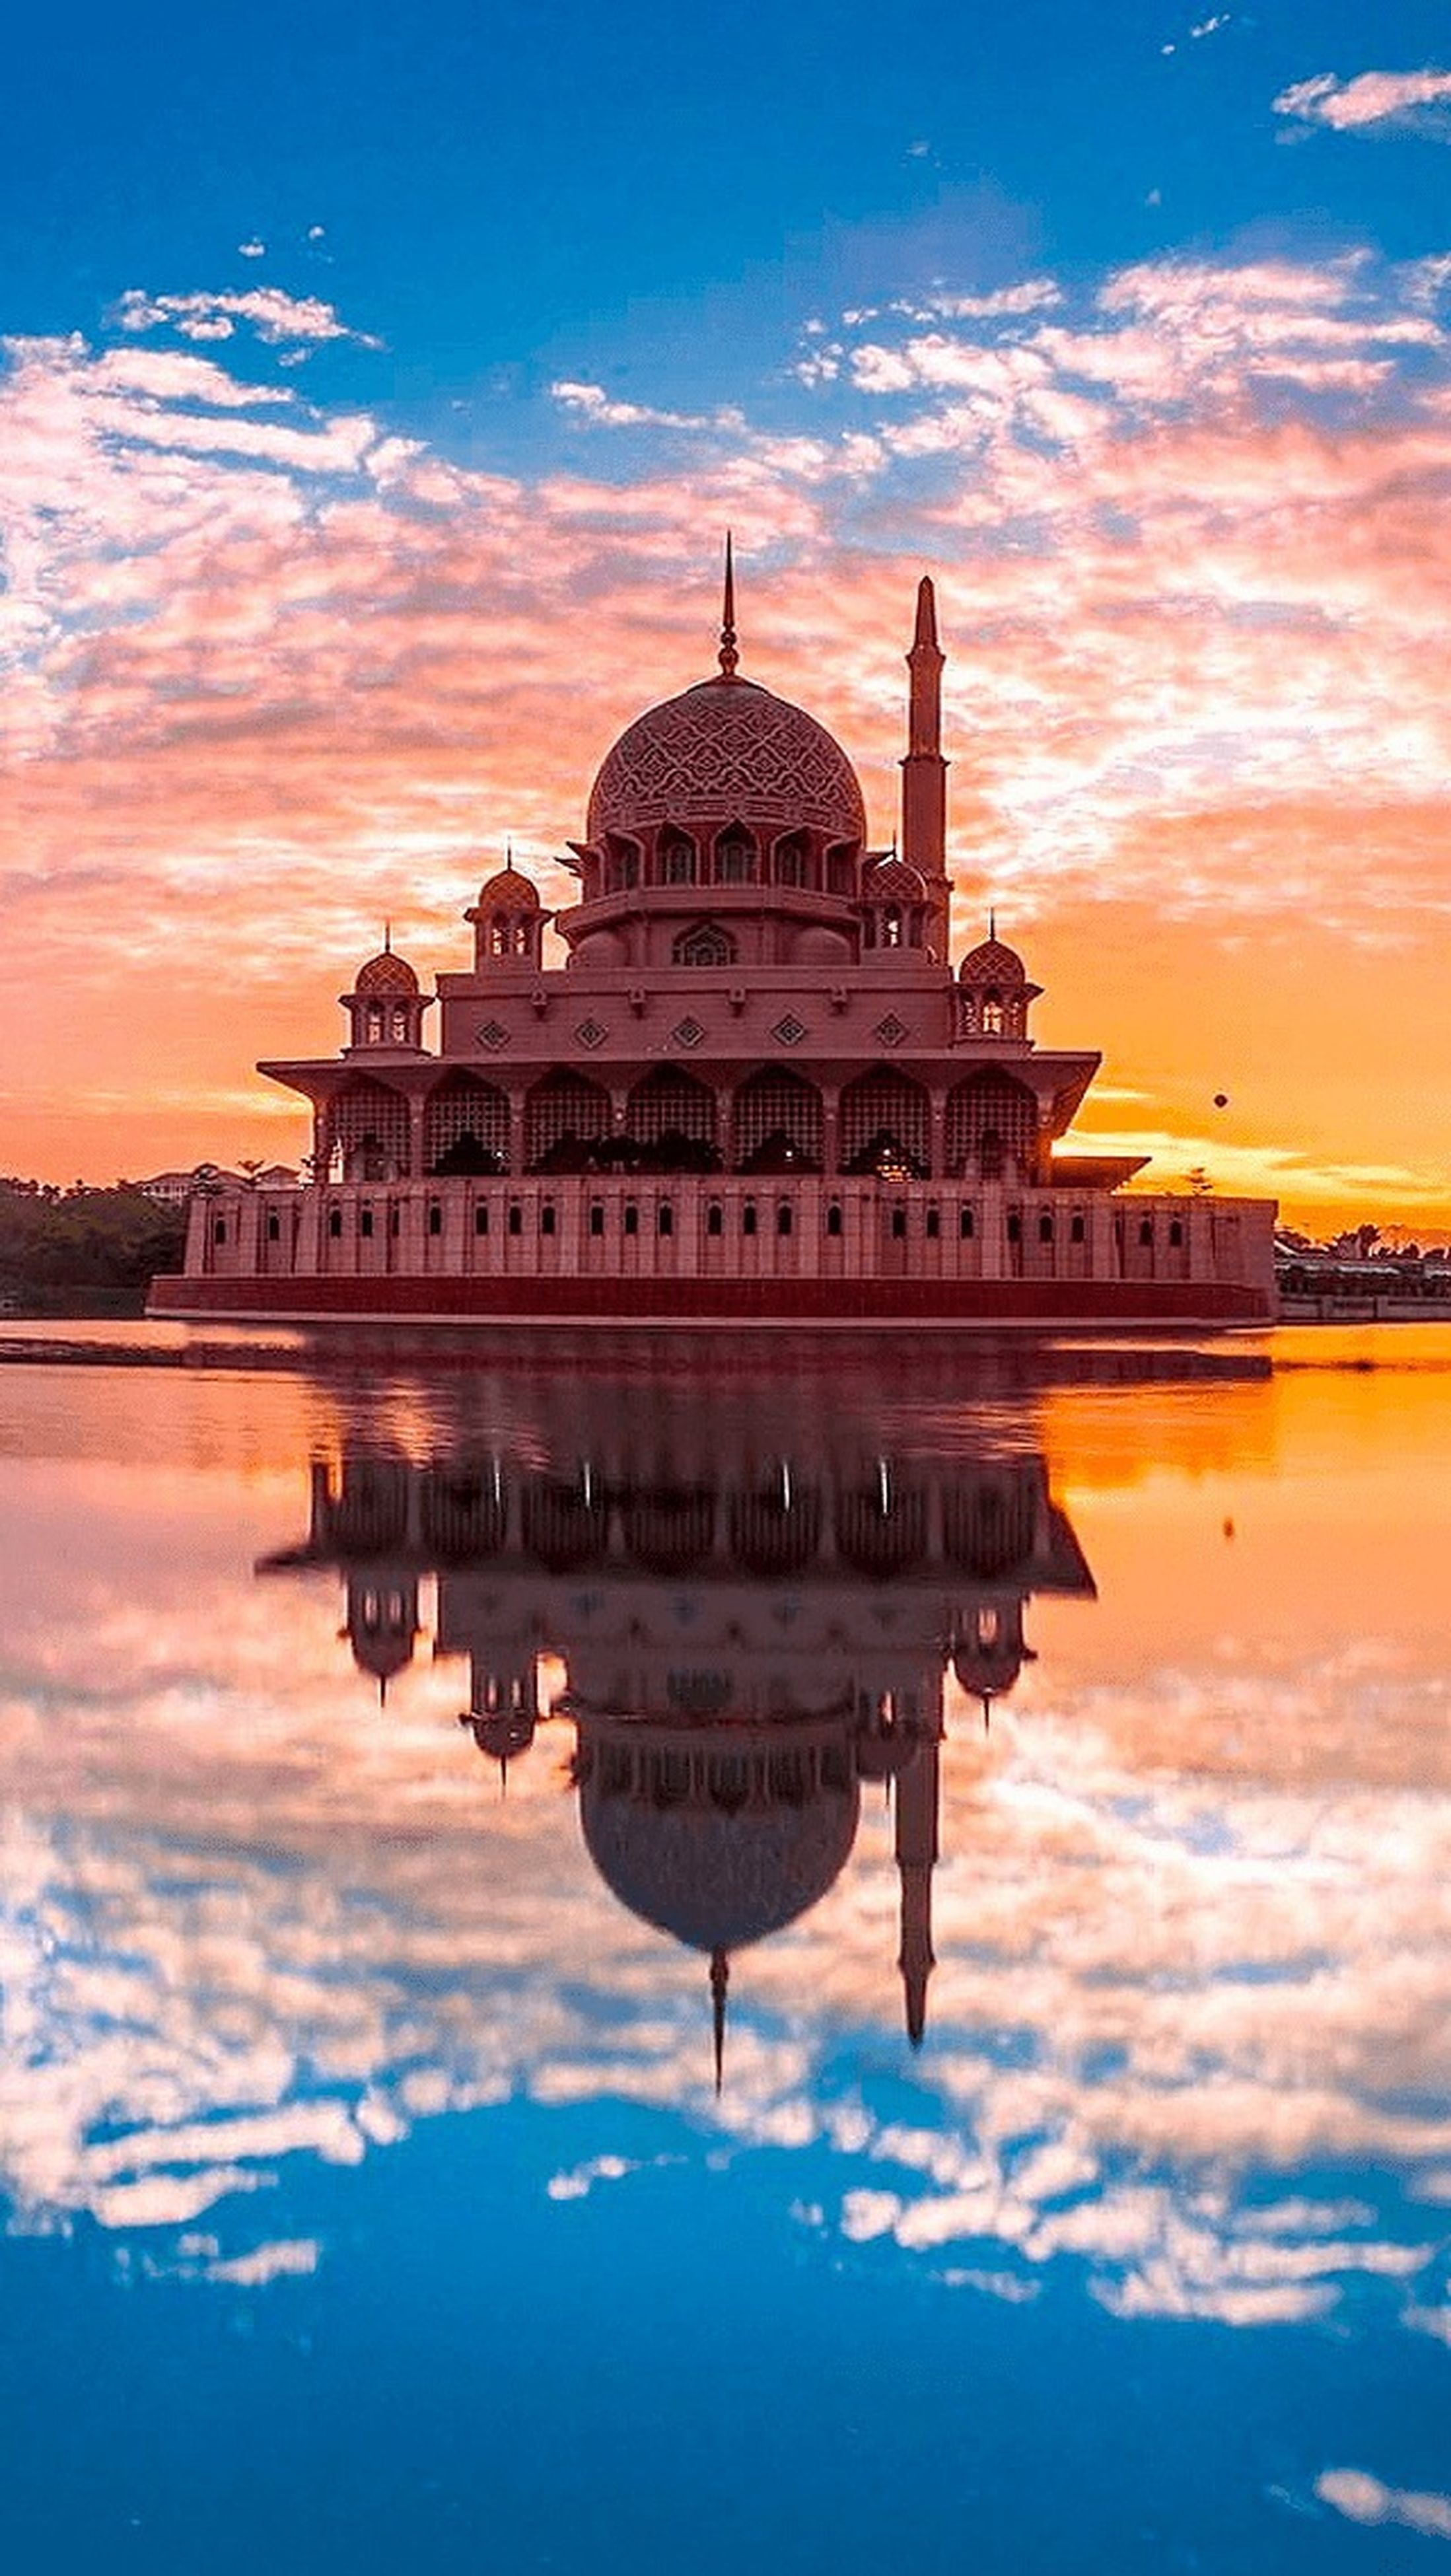 architecture, built structure, building exterior, famous place, sky, travel destinations, tourism, sunset, place of worship, dome, travel, religion, spirituality, water, reflection, international landmark, history, waterfront, cloud - sky, capital cities